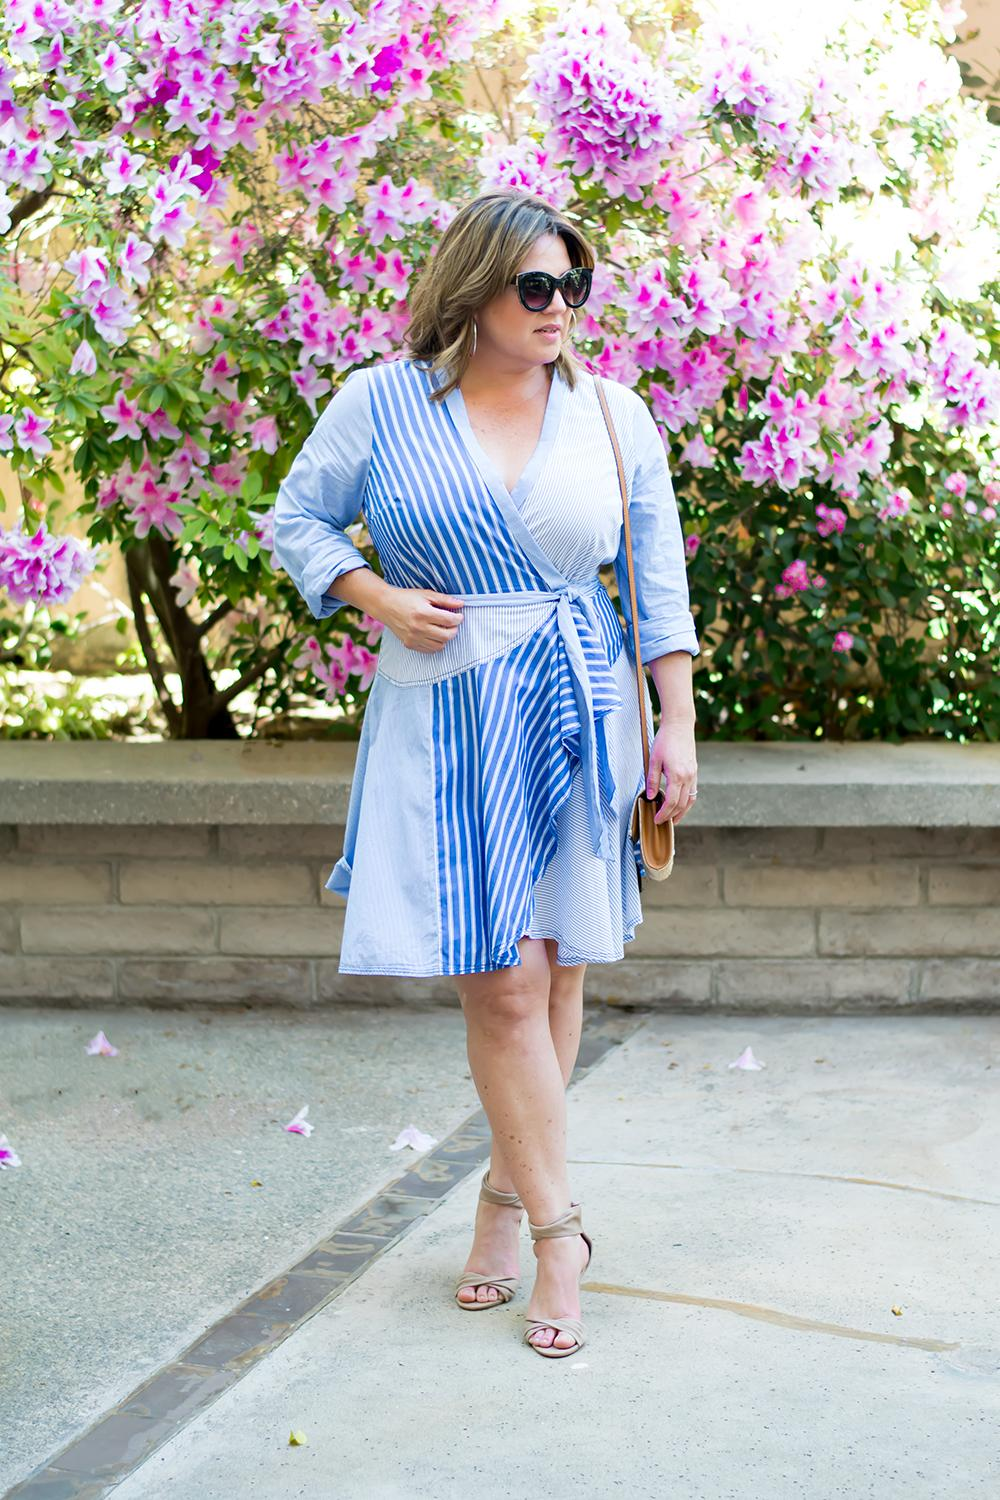 Striped-Poplin-Wrap-Dress-The-Biggest-Trends-for-2017-Barefoot-in-LA-Fashion-Blog-Style-Ideas-Outfits_1002